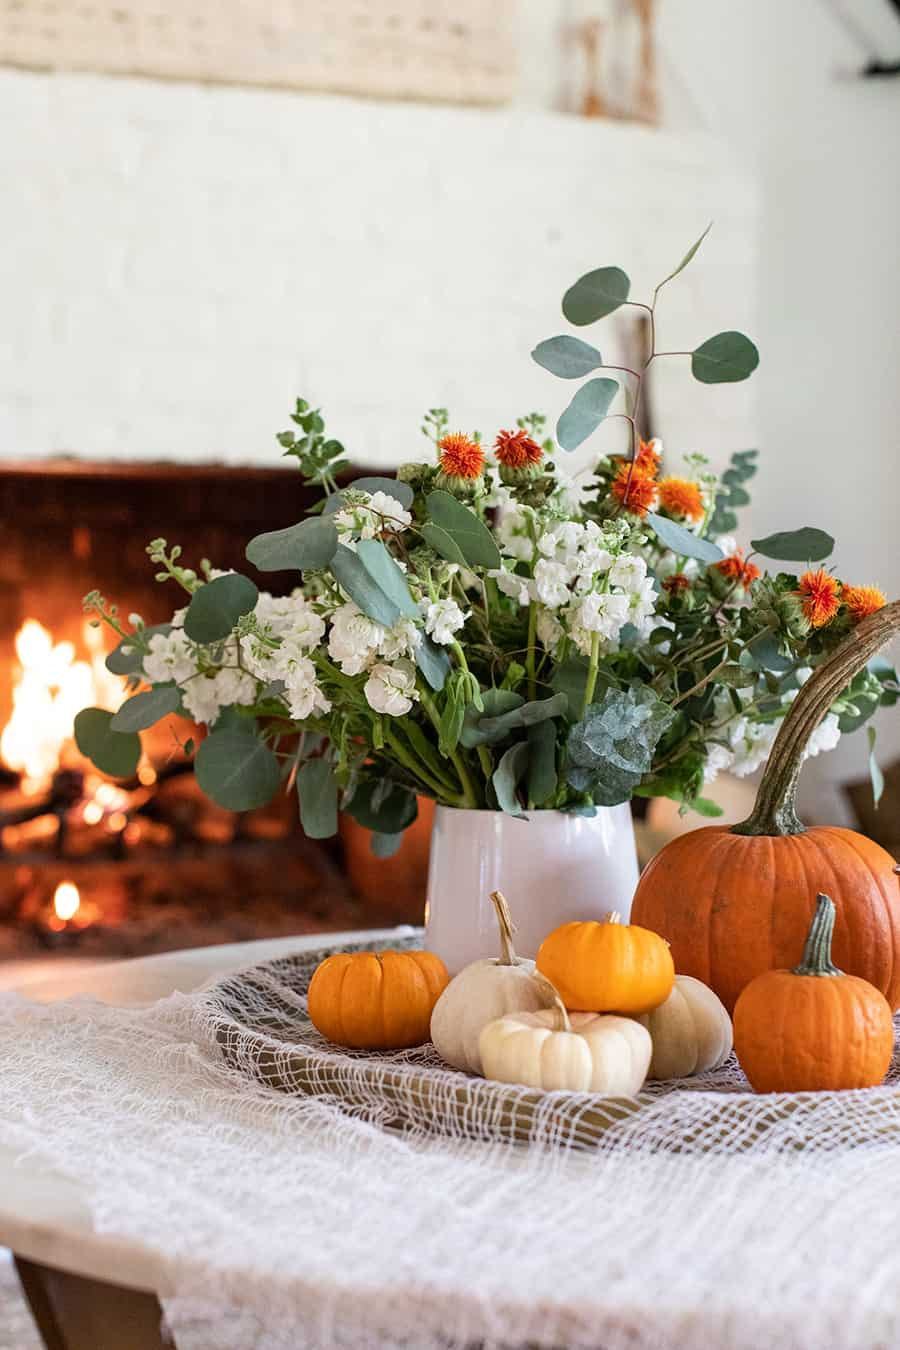 Halloween pumpkins and a vase wirth flowers